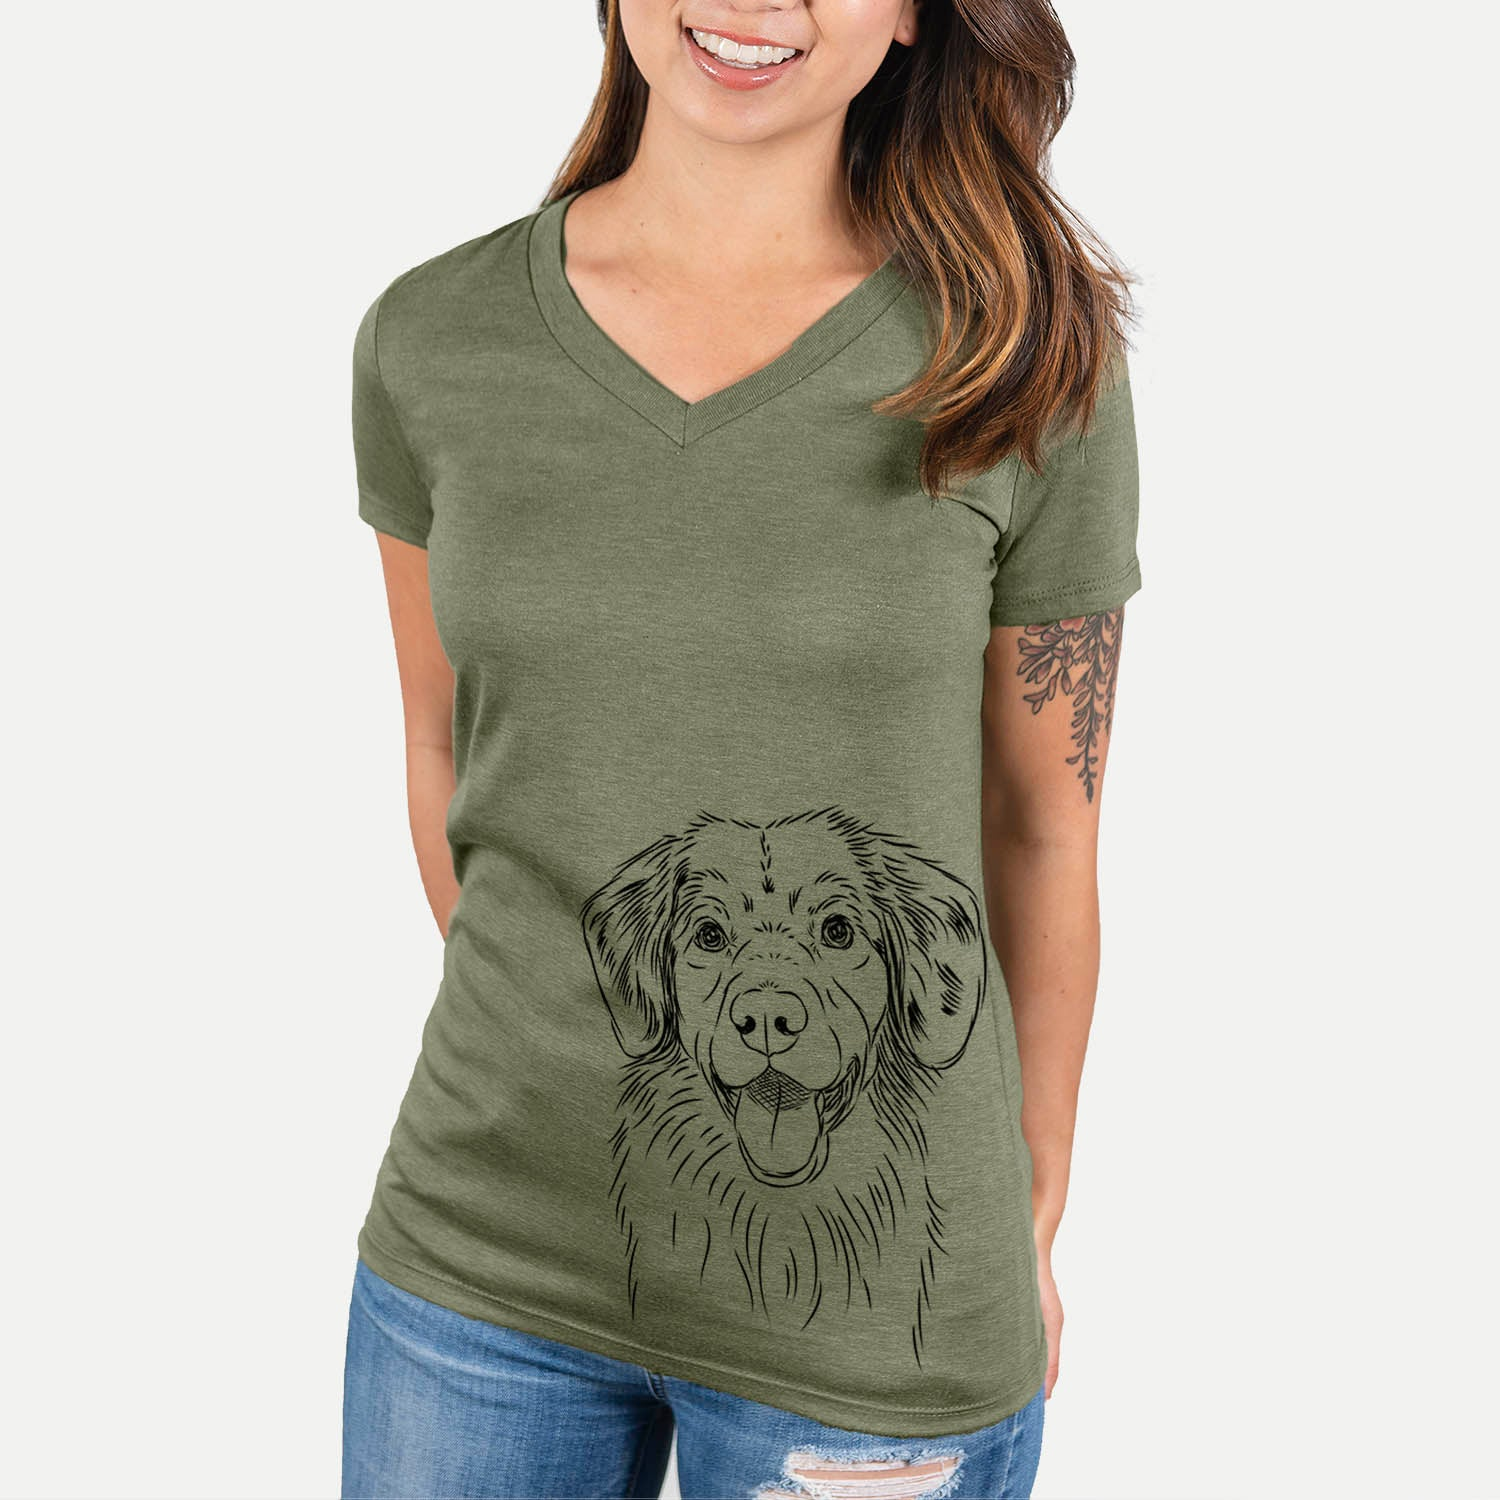 Weston the Nova Scotia Duck Tolling Retriever - Women's Modern Fit V-neck Shirt